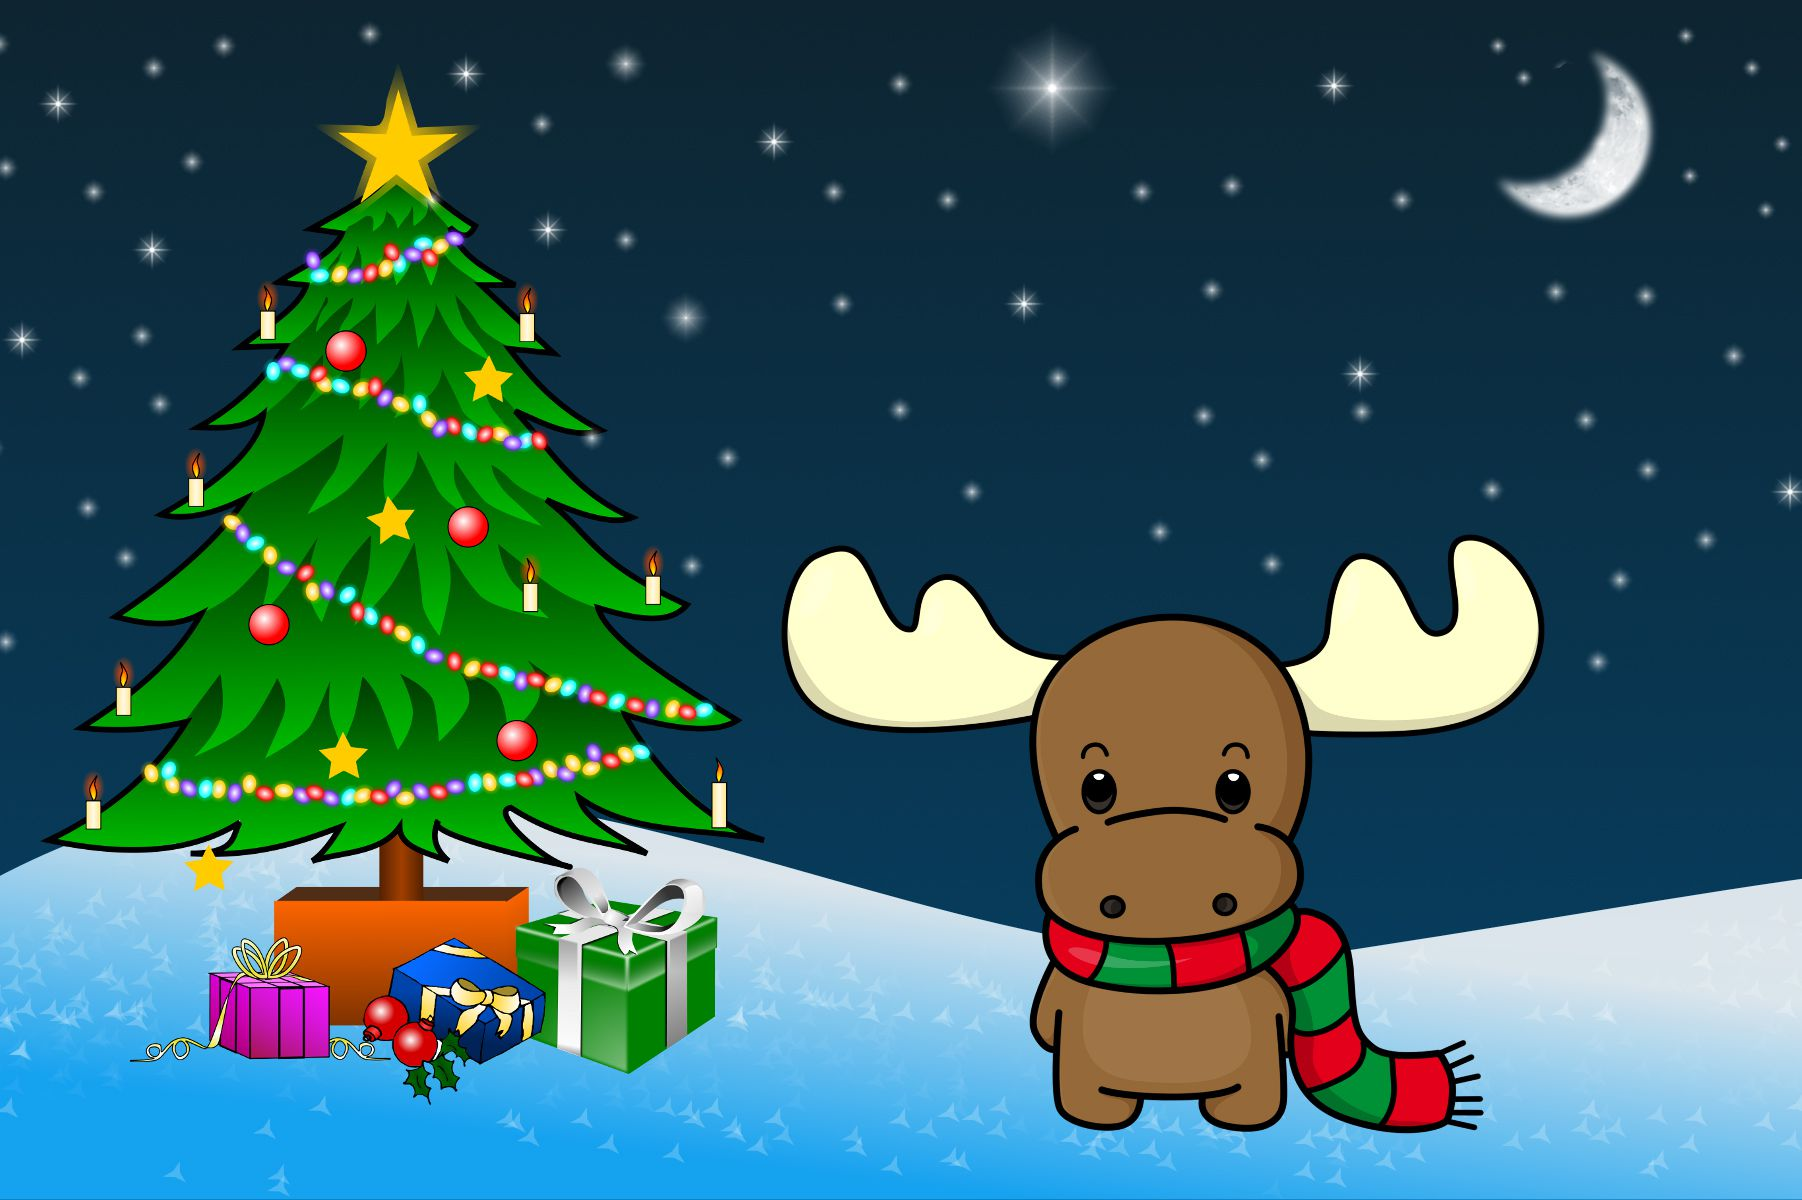 Christmas Desktop Wallpaper for Mac, Windows, and Linux